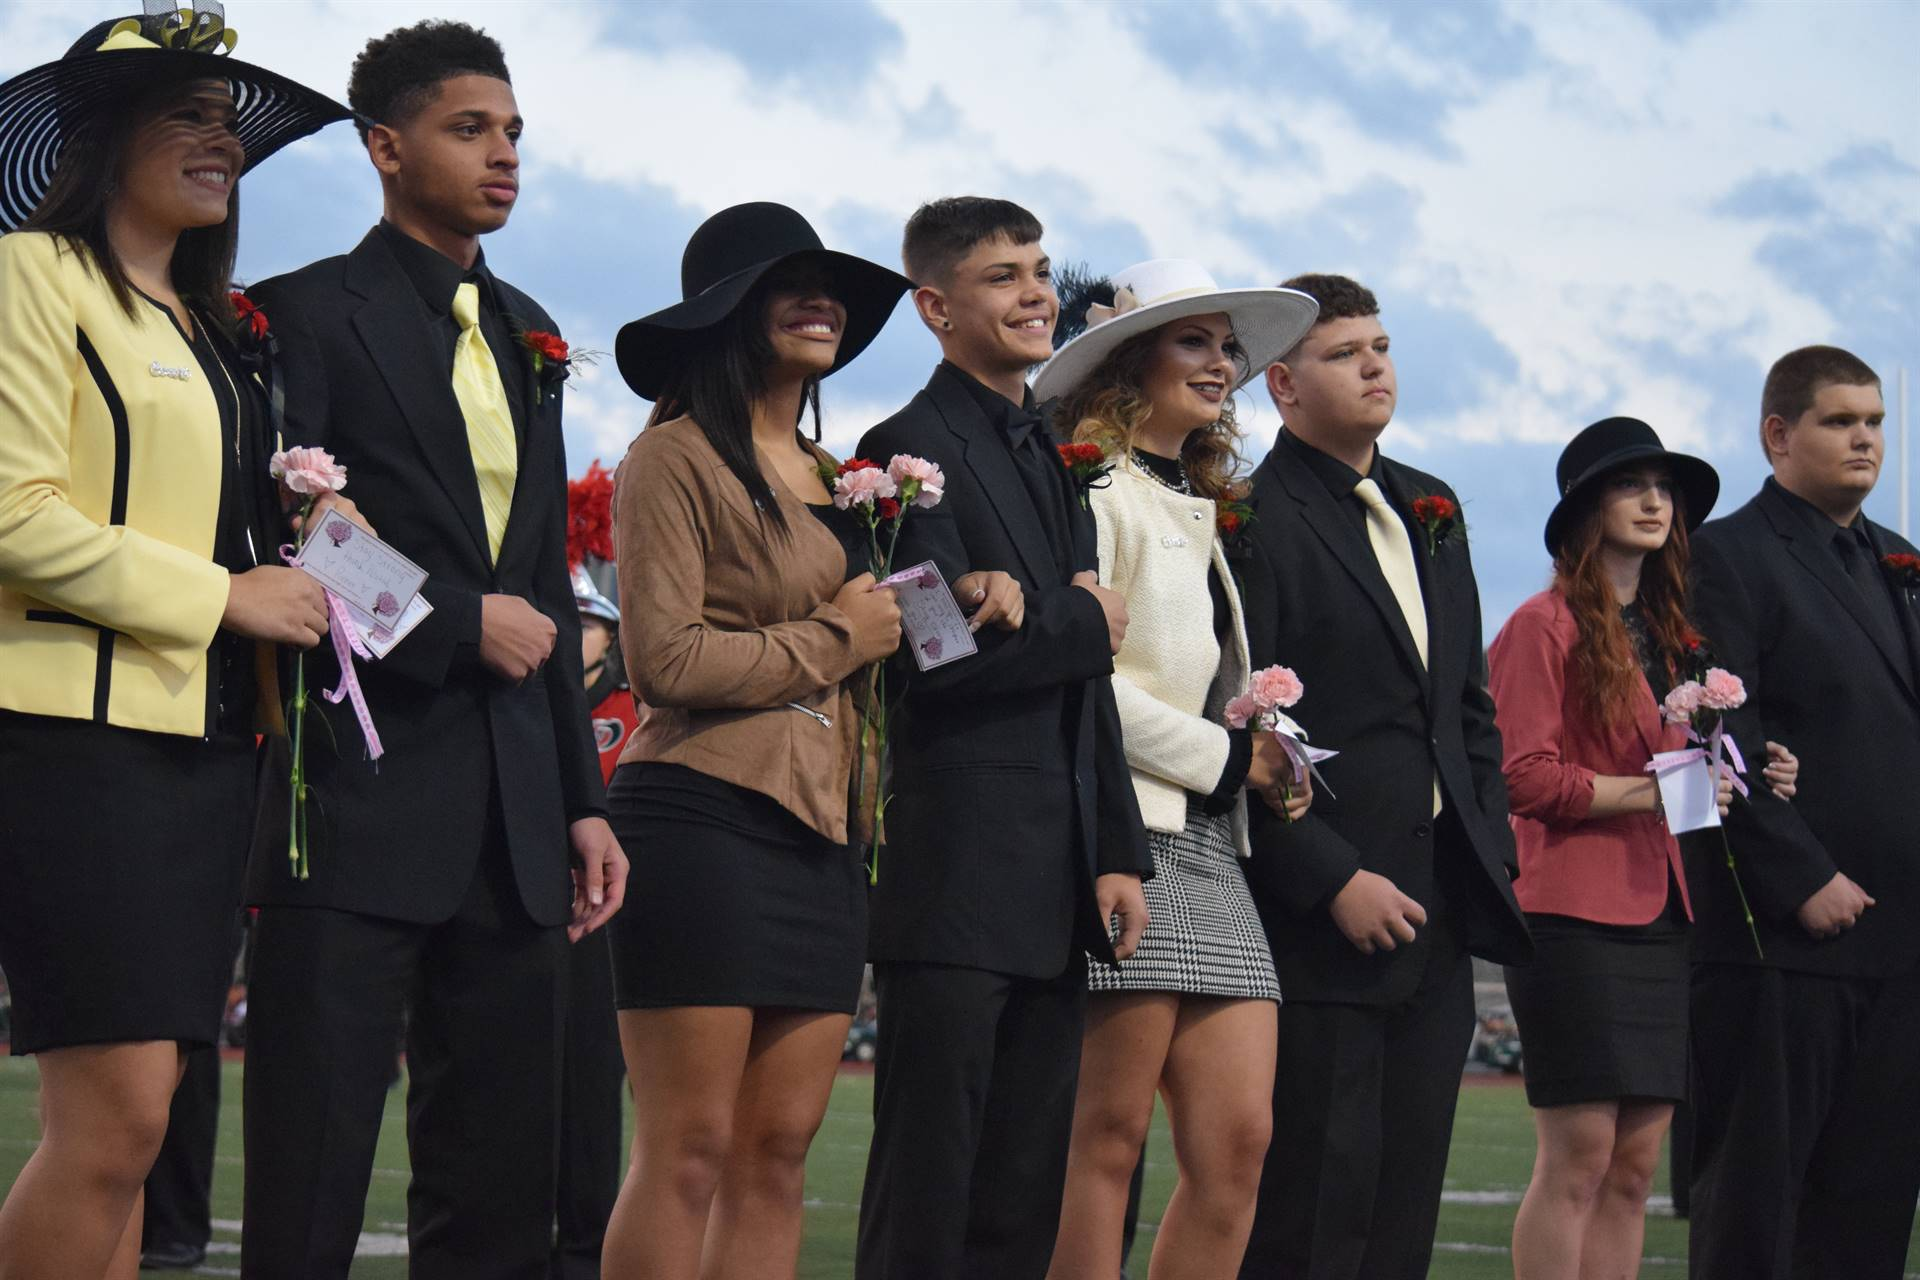 Members of the 2017 Homecoming Court